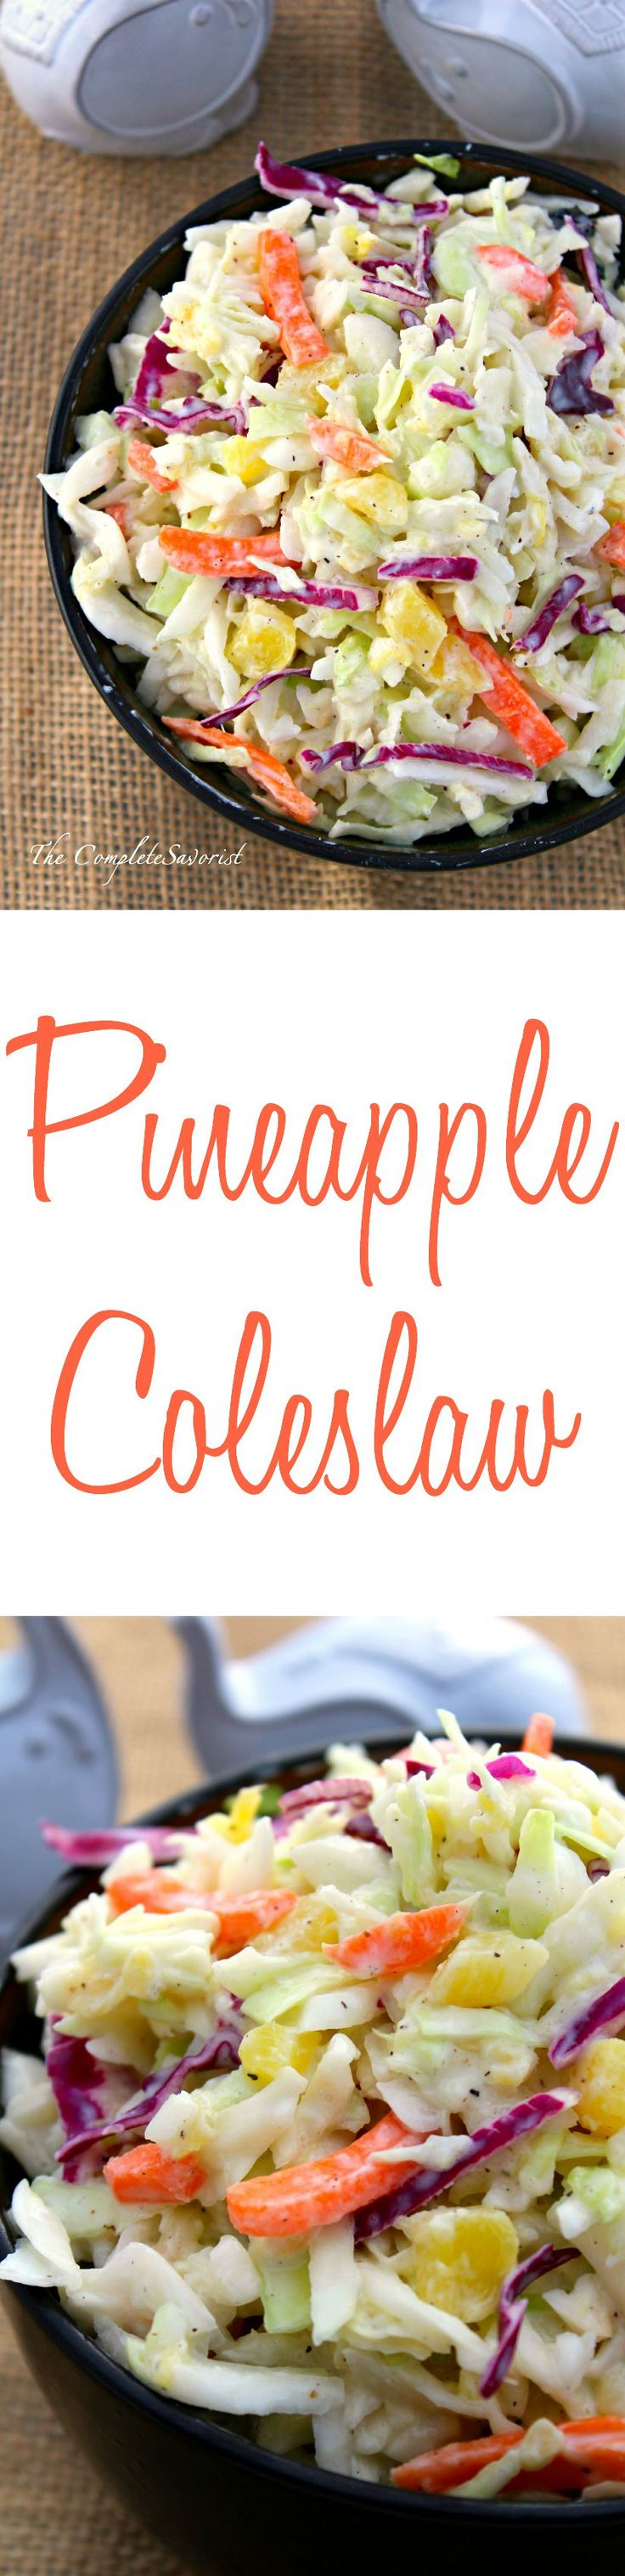 Coleslaw clipart tossed salad Best Pineapple Coleslaw on 20+